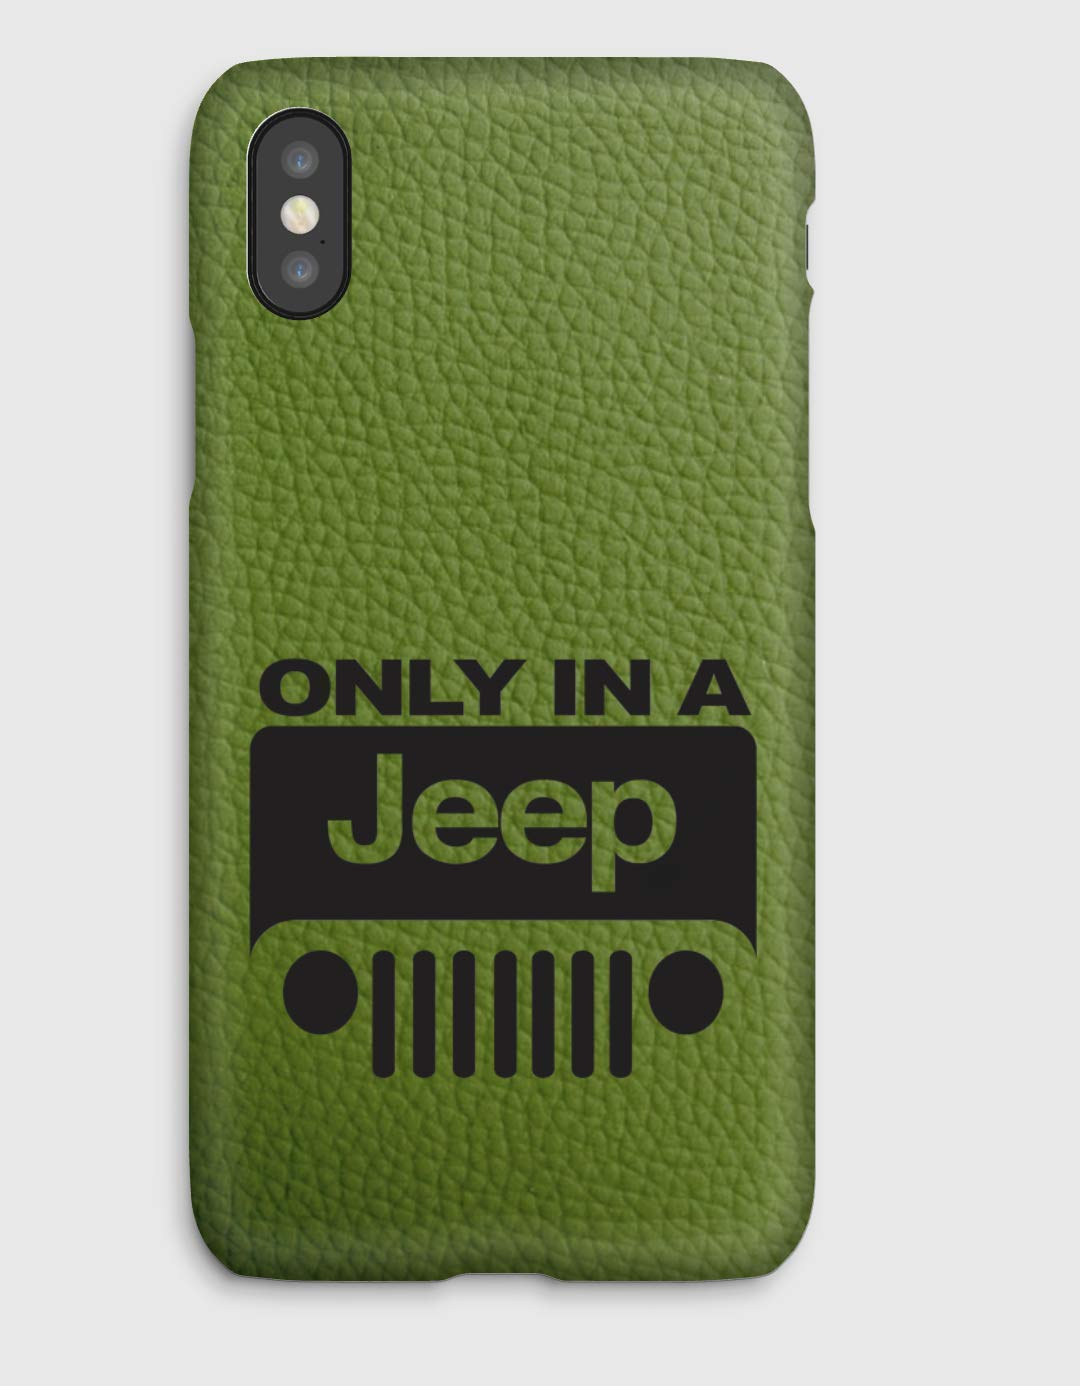 Only in a Jeep, coque pour iPhone XS, XS Max, XR, X, 8, 8+, 7, 7+, 6S, 6, 6S+, 6+, 5C, 5, 5S, 5SE, 4S, 4,